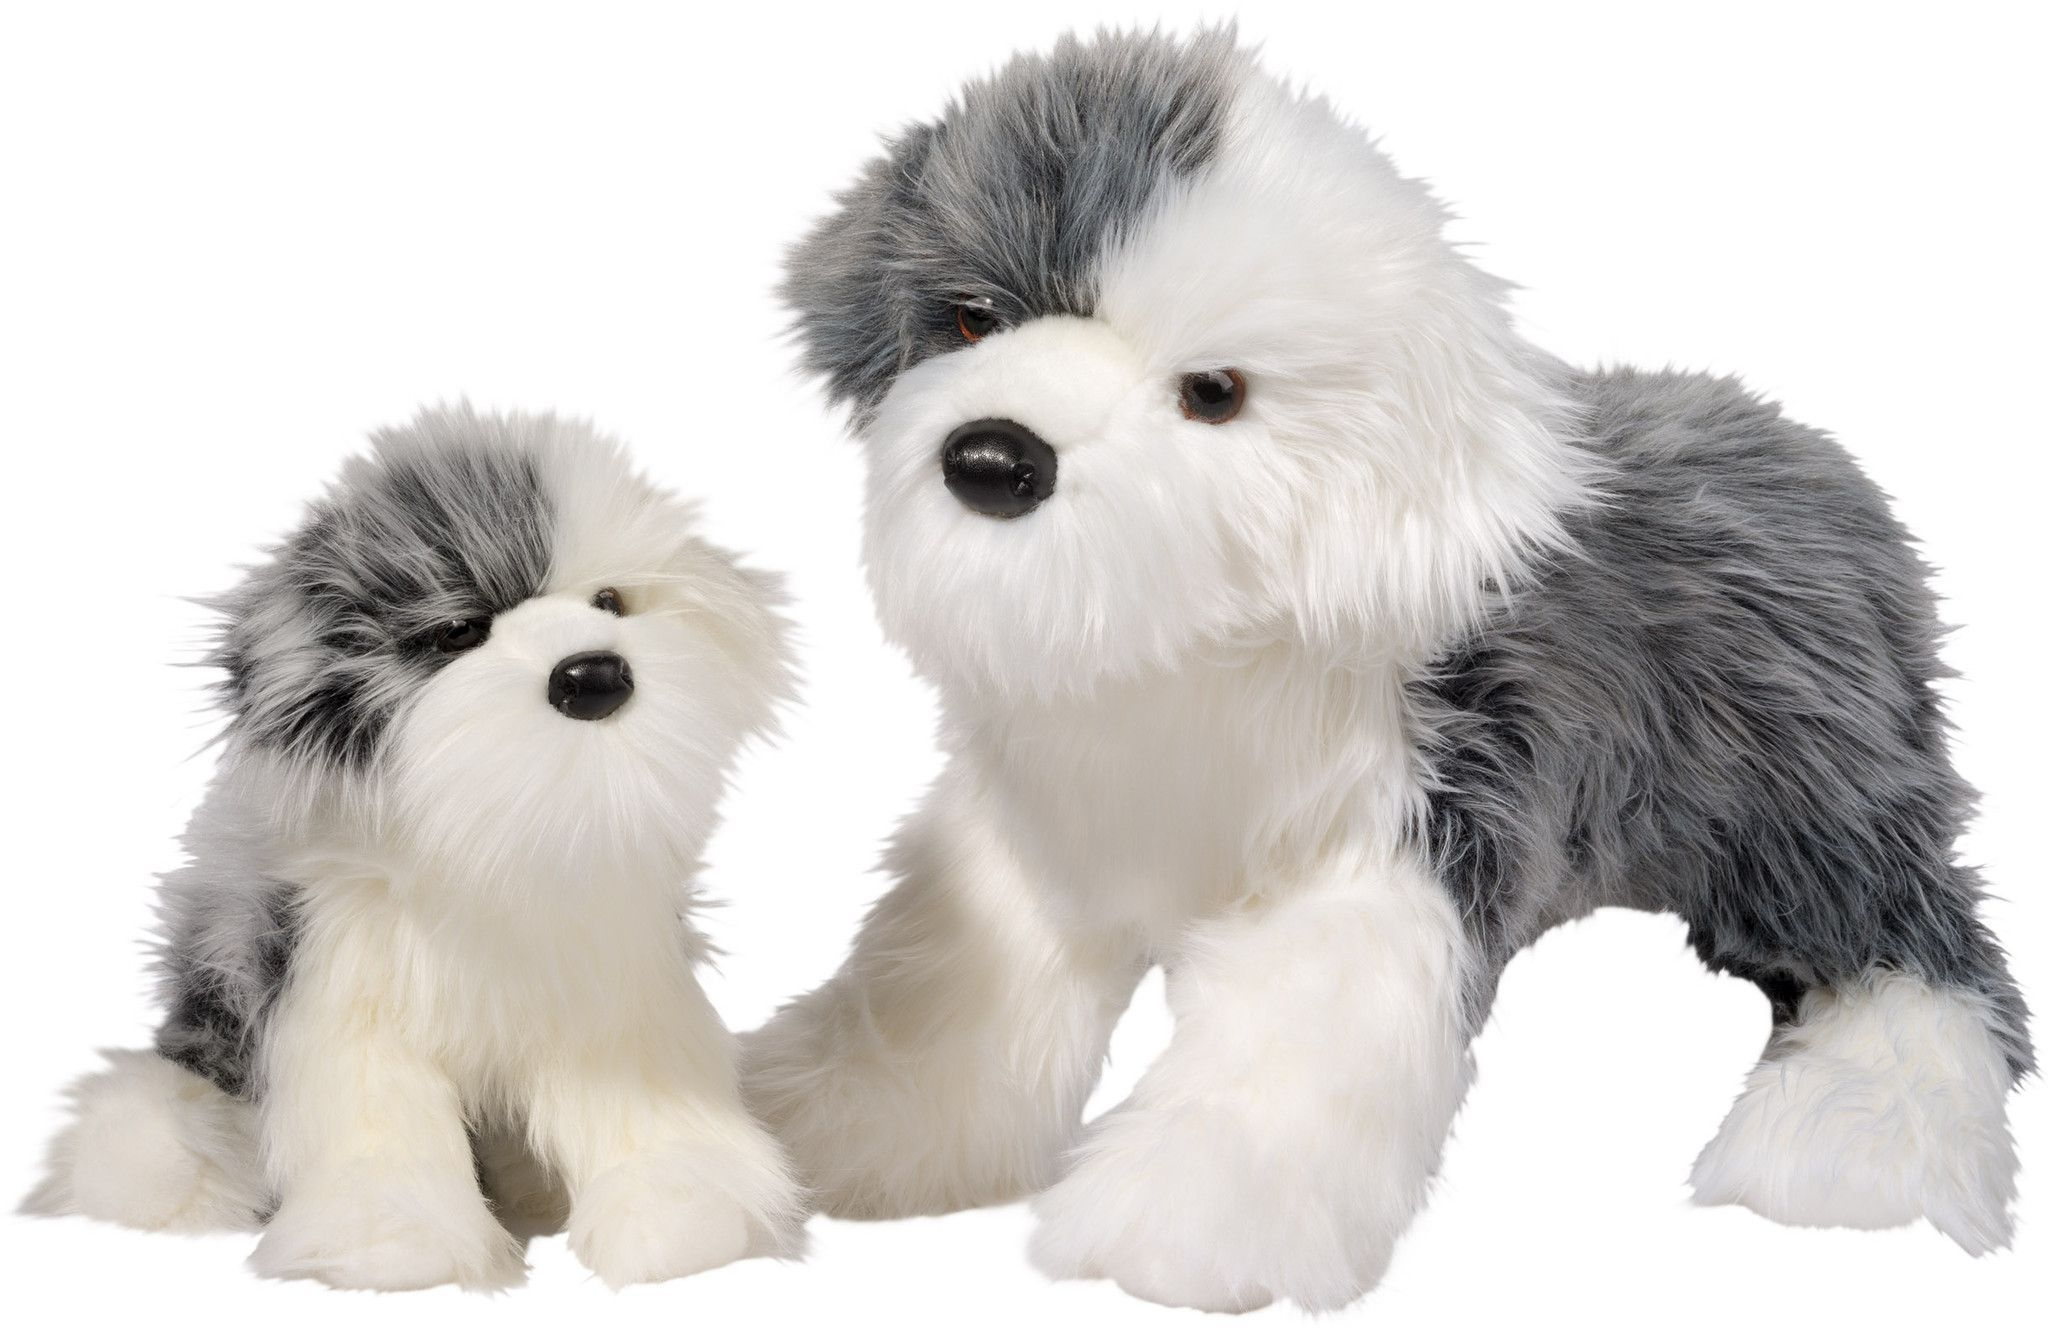 Large Sheep Dog Companion For People With Alzheimer S Dogs